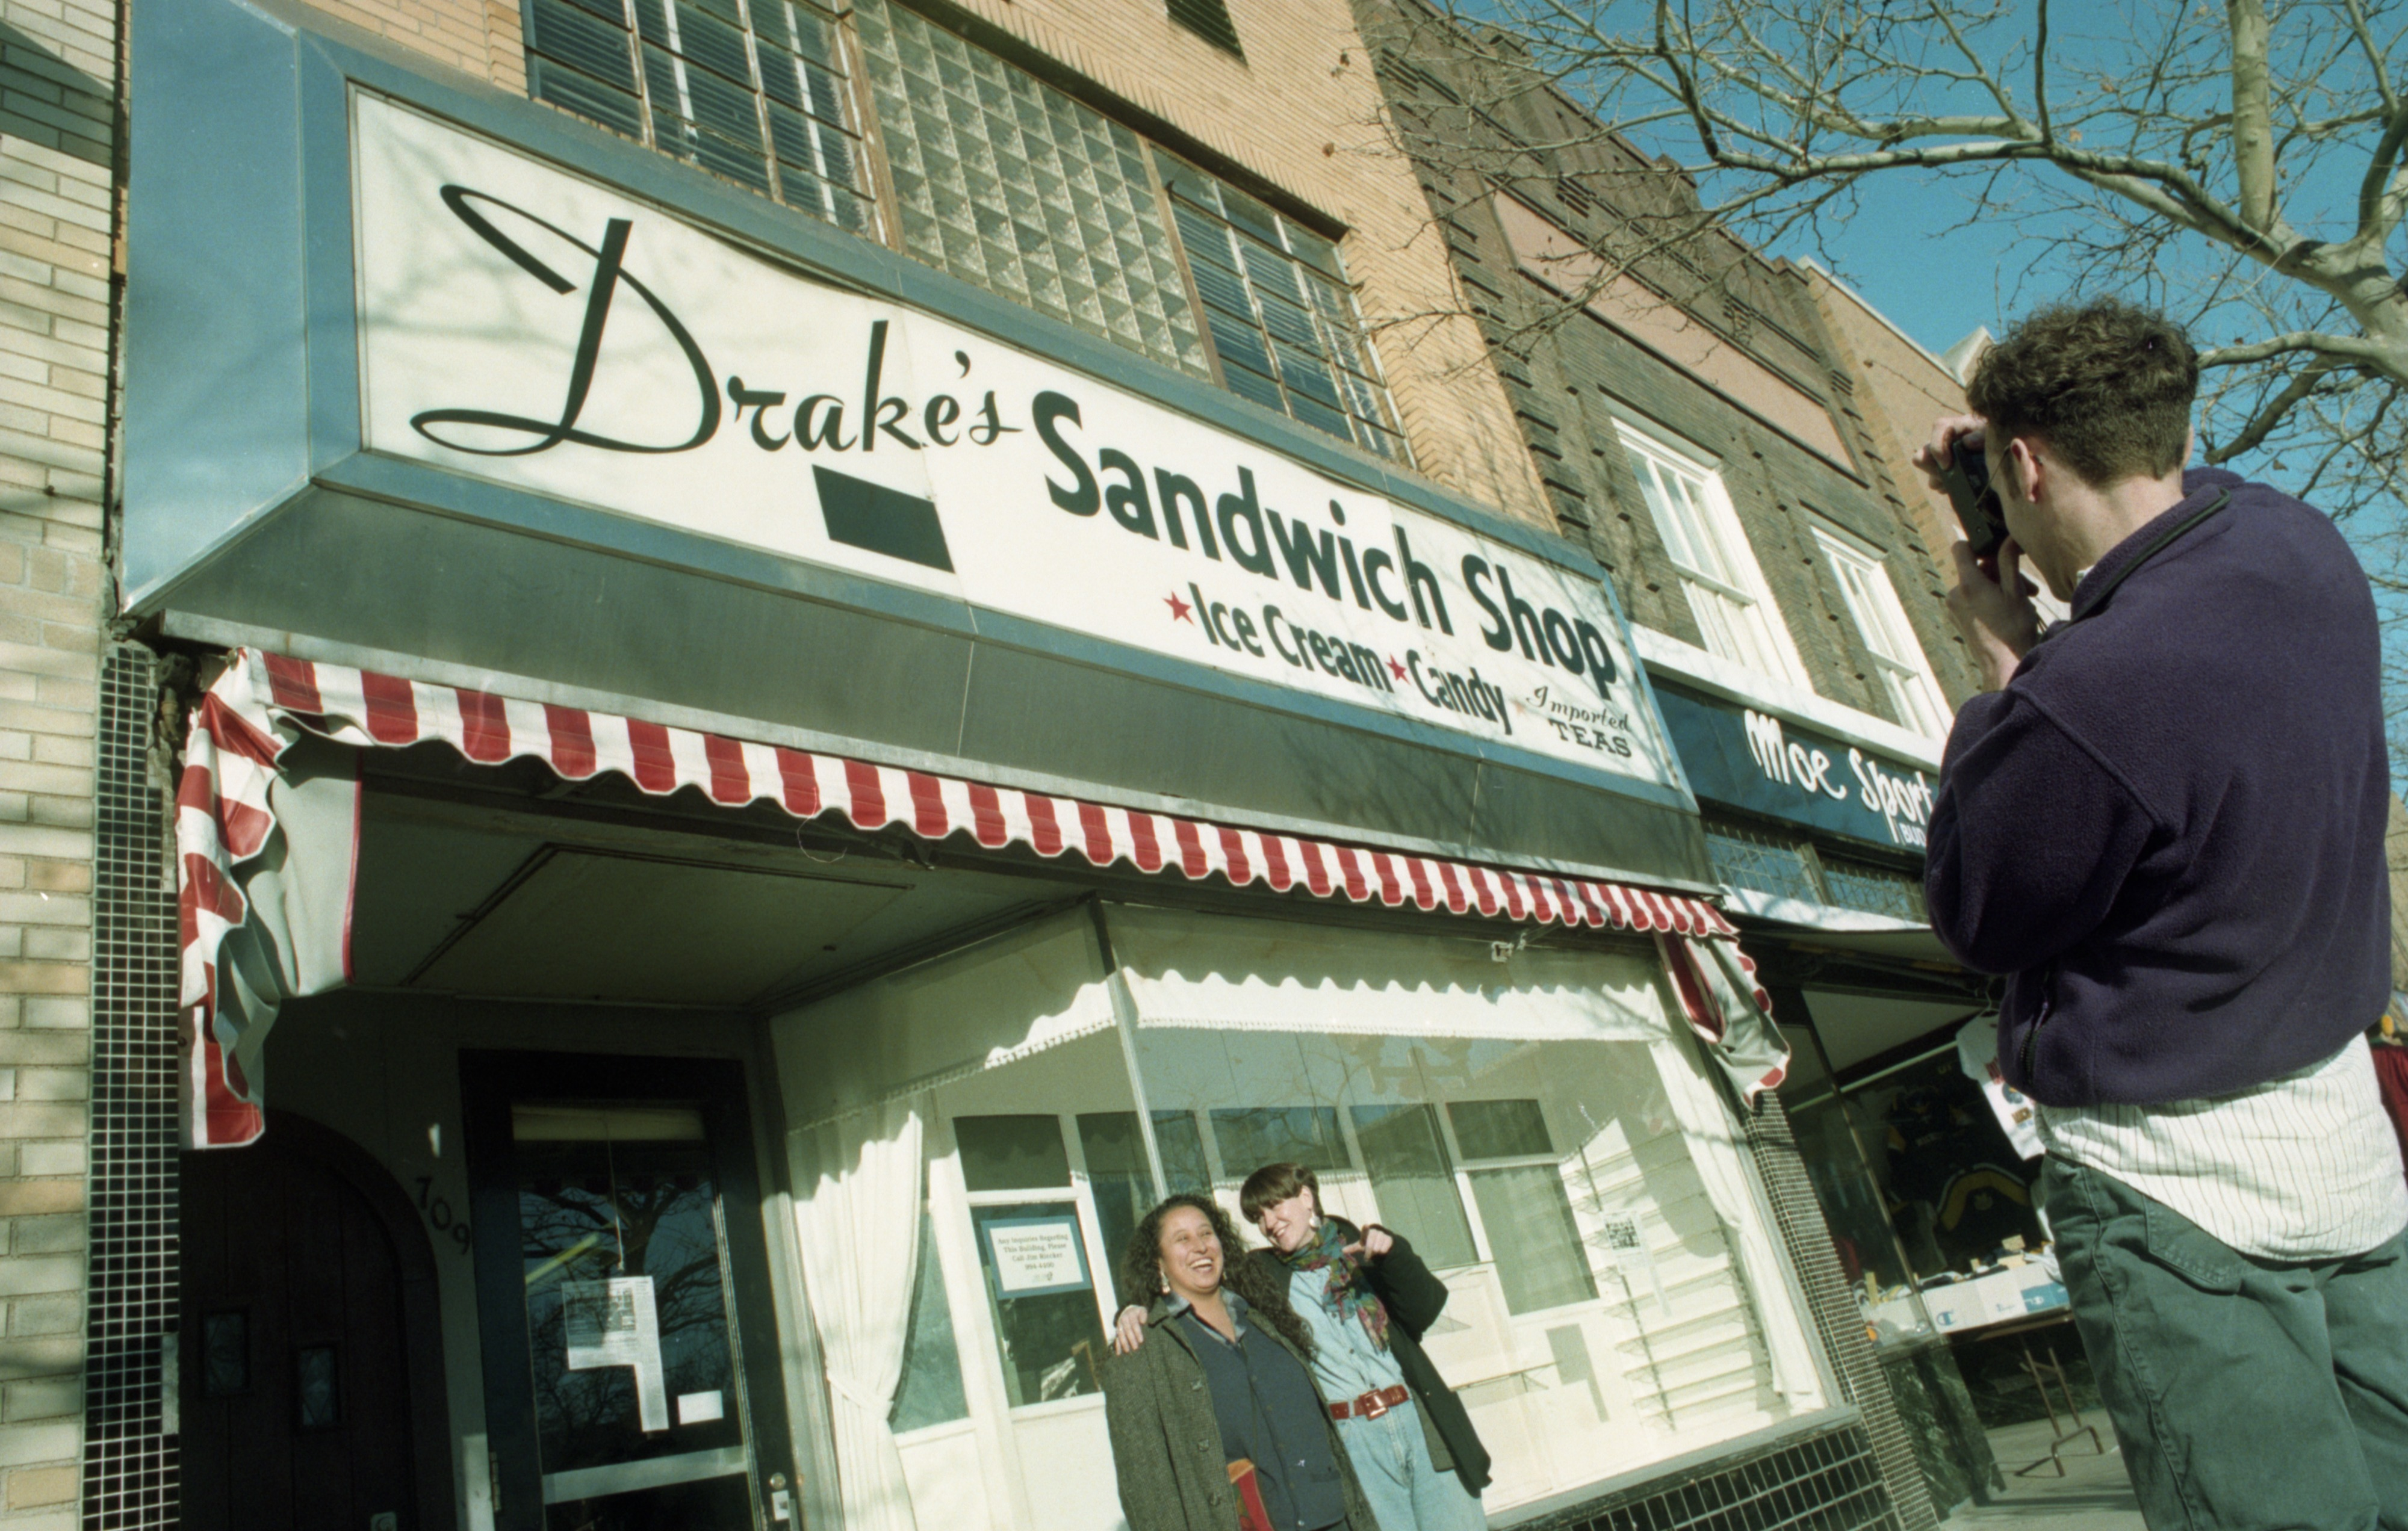 Elsa Barboza & Betsy Esch Pose For Picture In Front Of Drake's Sandwich Shop, December 29, 1993 image